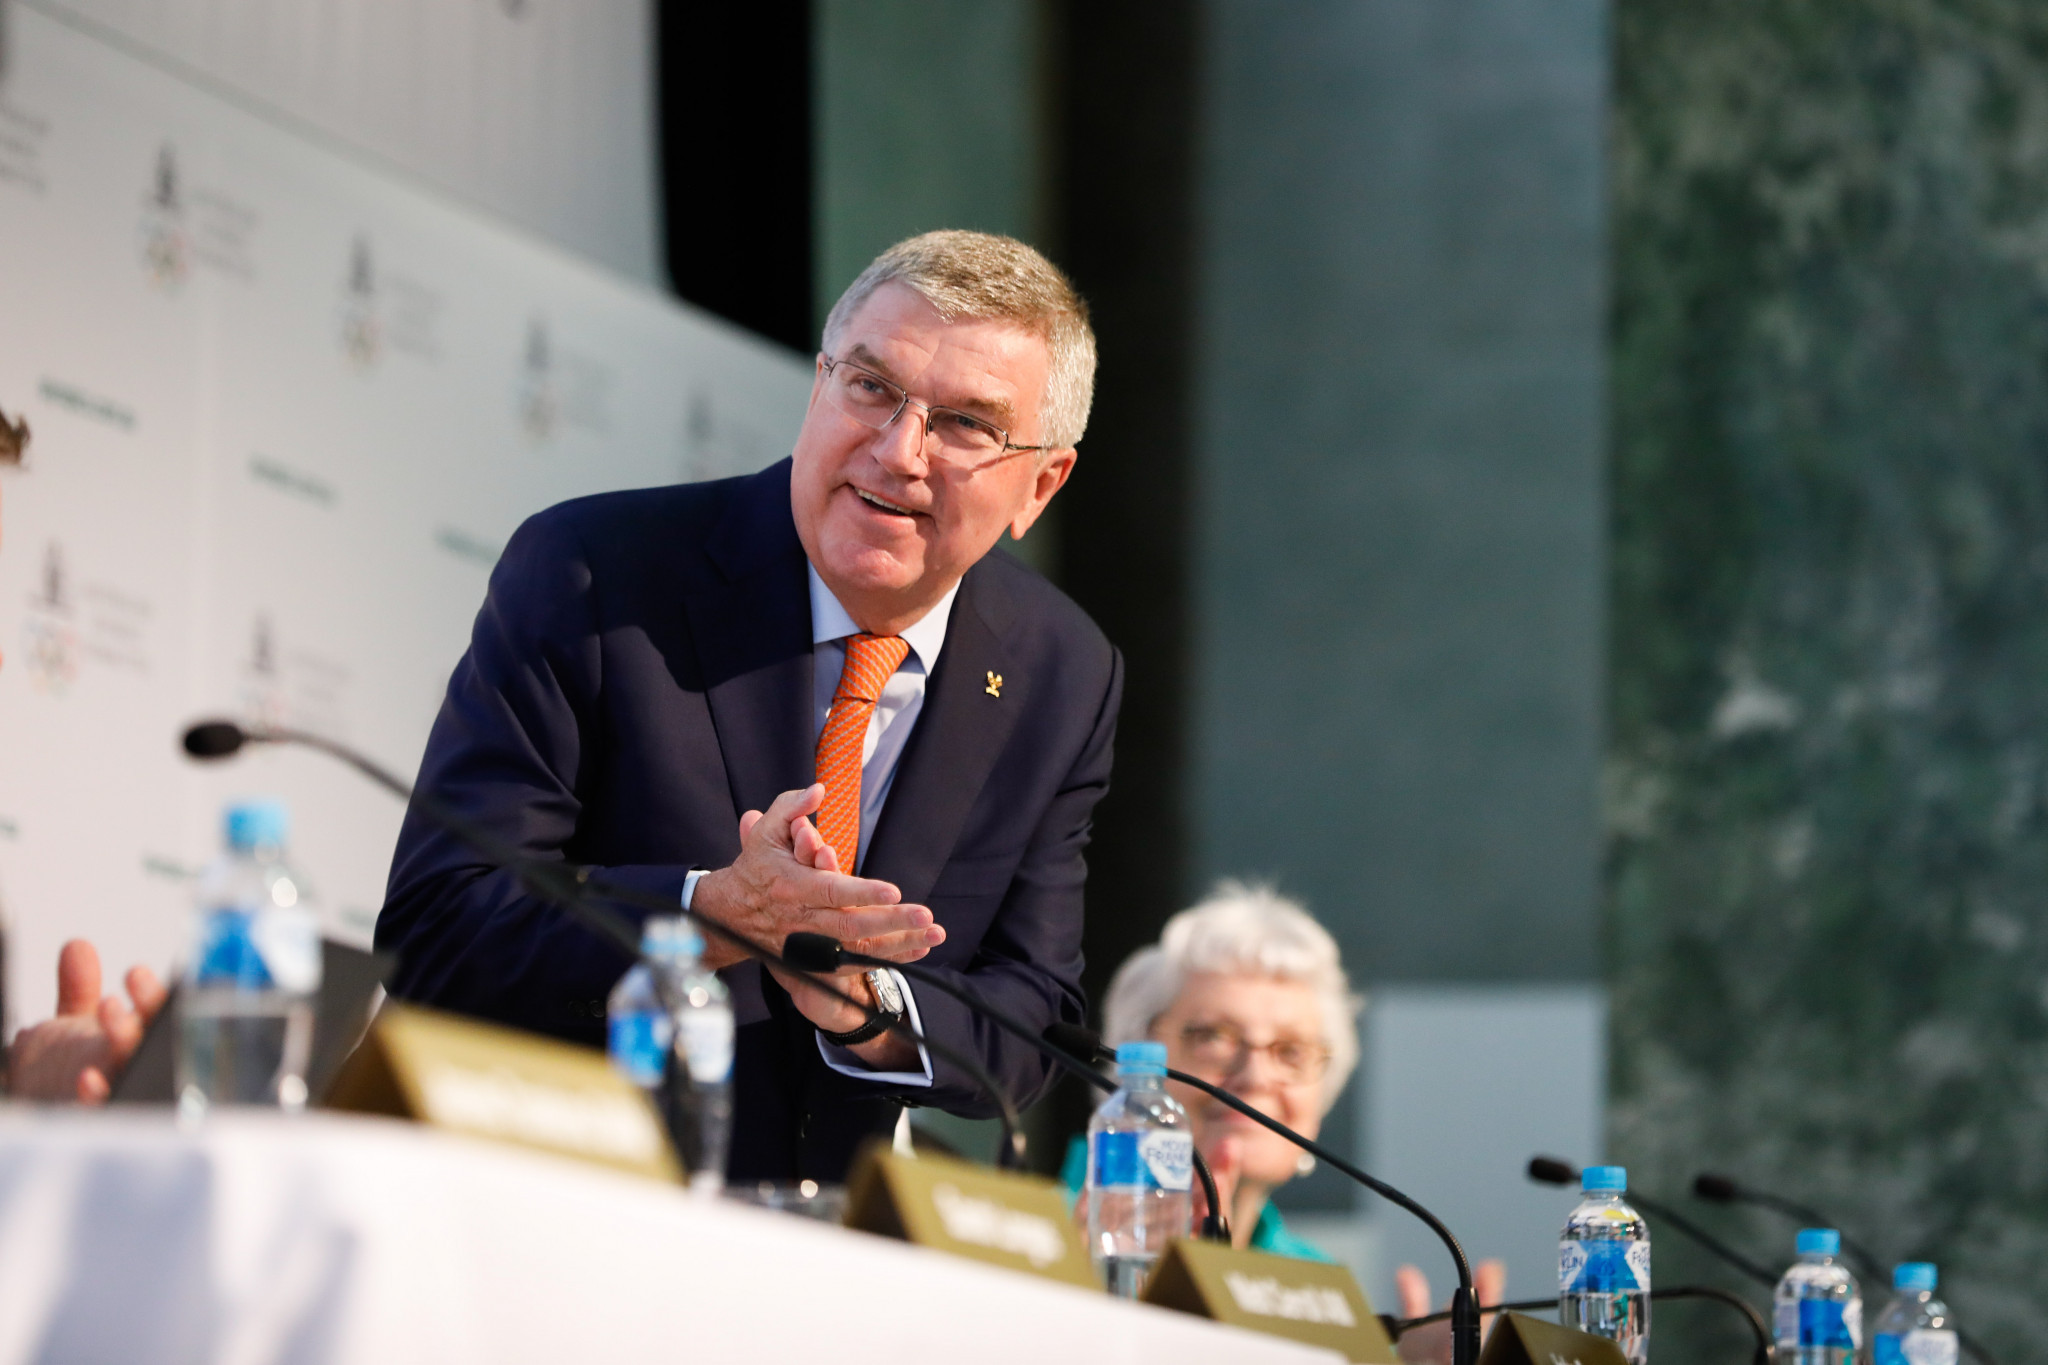 International Olympic Committee President Thomas Bach has praised Tokyo 2020's preparations for the Olympic and Paralympic Games ©Getty Images